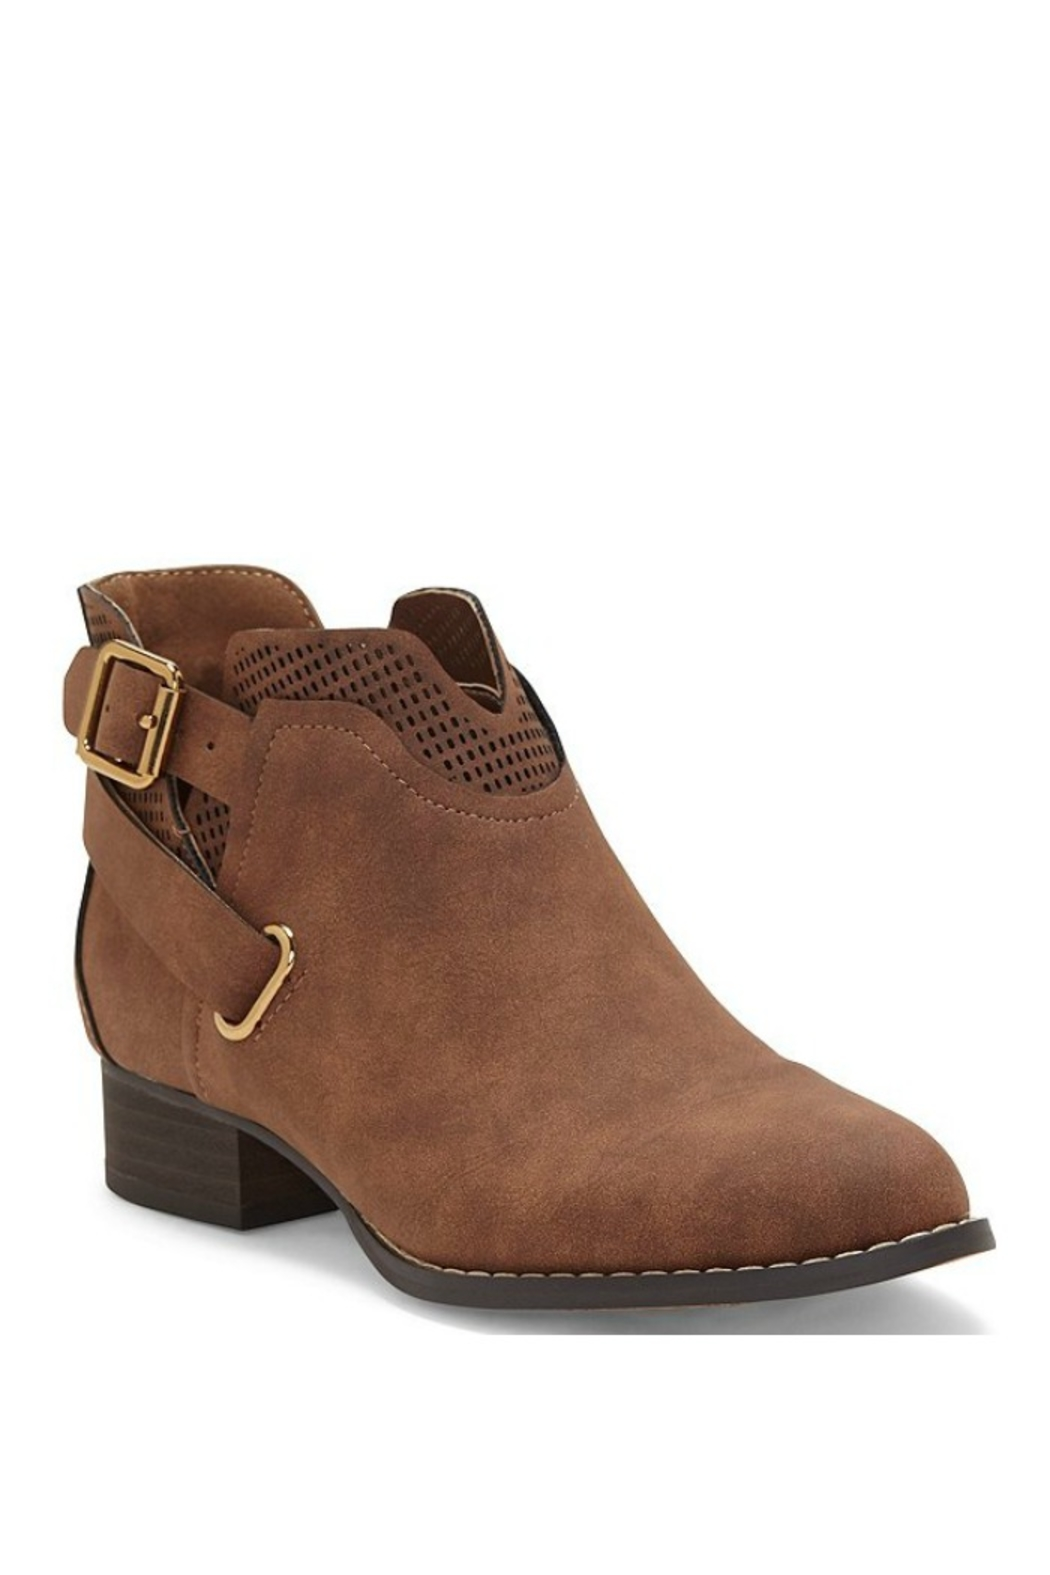 Vince Camuto Calliope Boot - Front Cropped Image